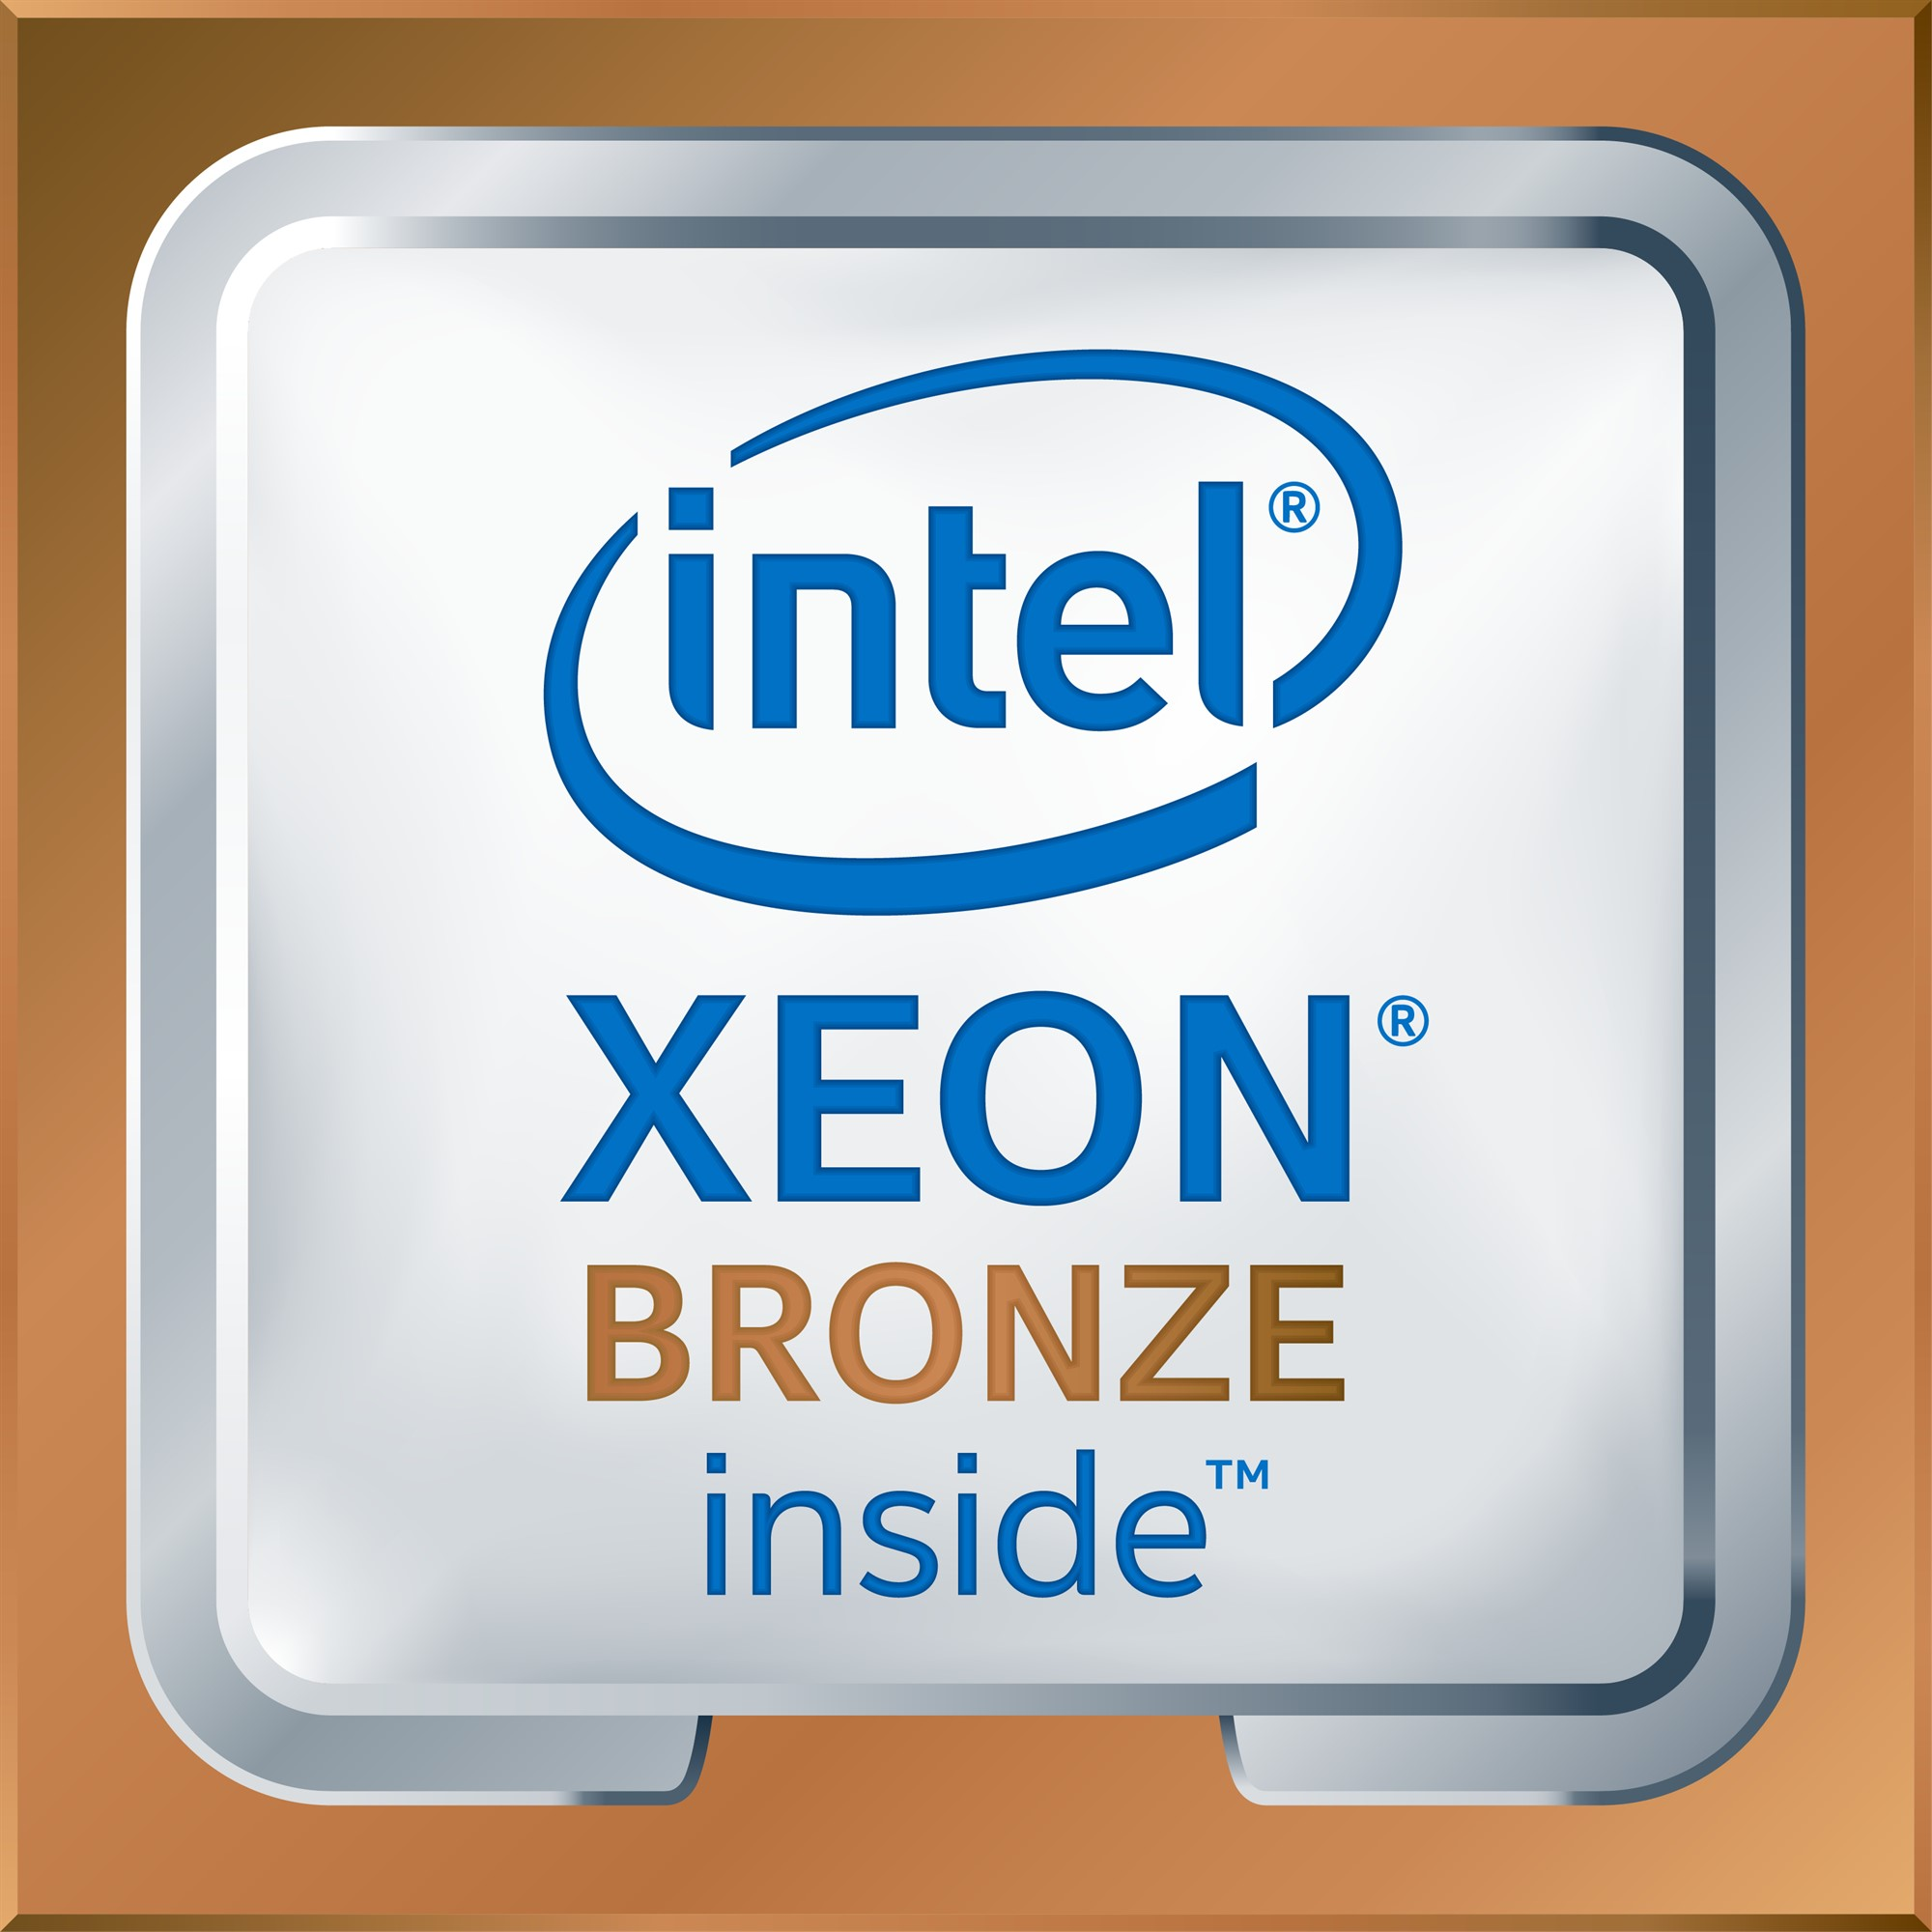 INTEL XEON BRONZE 3106 PROCESSOR (11M CACHE, 1.70 GHZ) 1.70GHZ 11MB L3